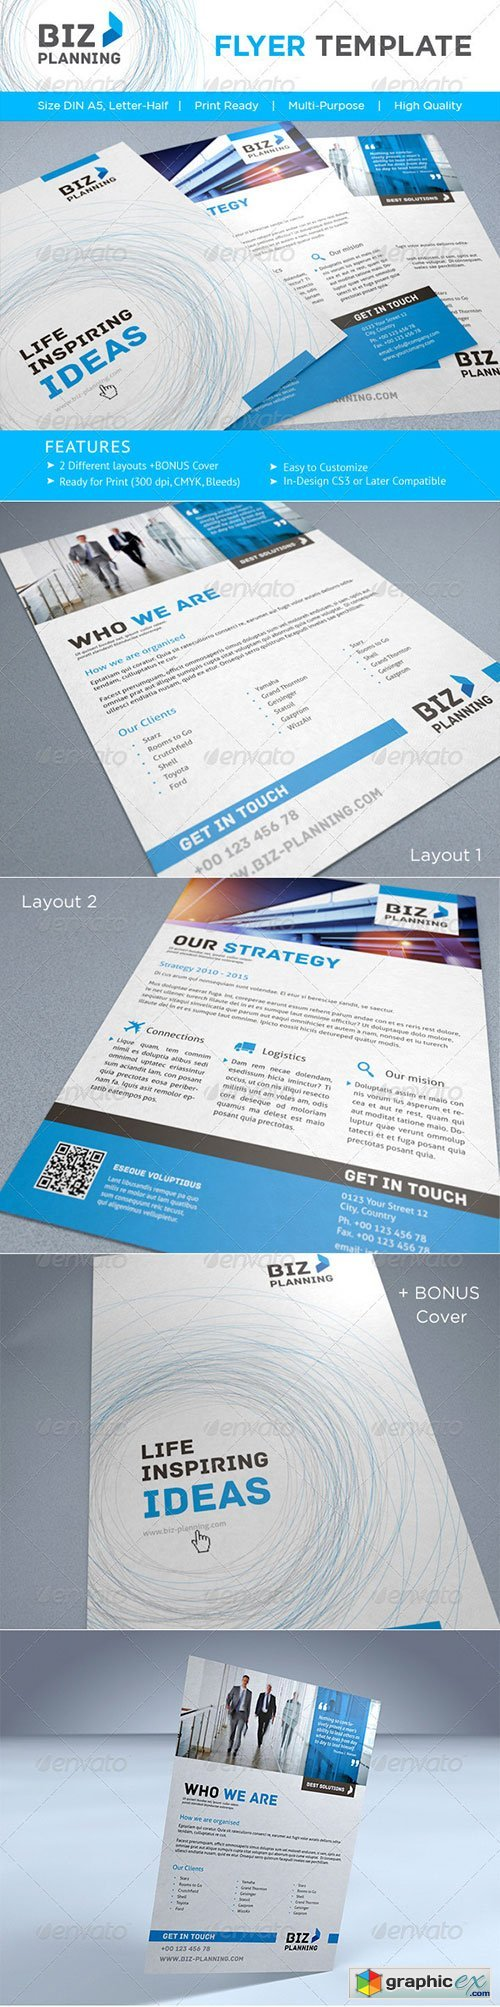 Corporate Flyer / AD Template 2235603